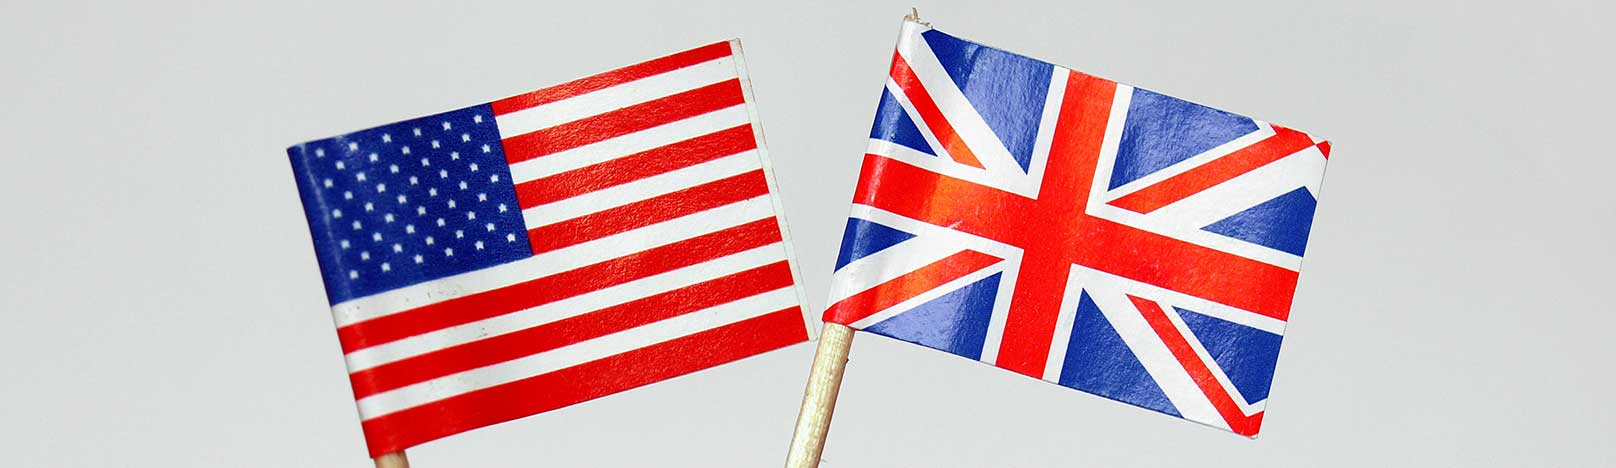 British american toothpicks